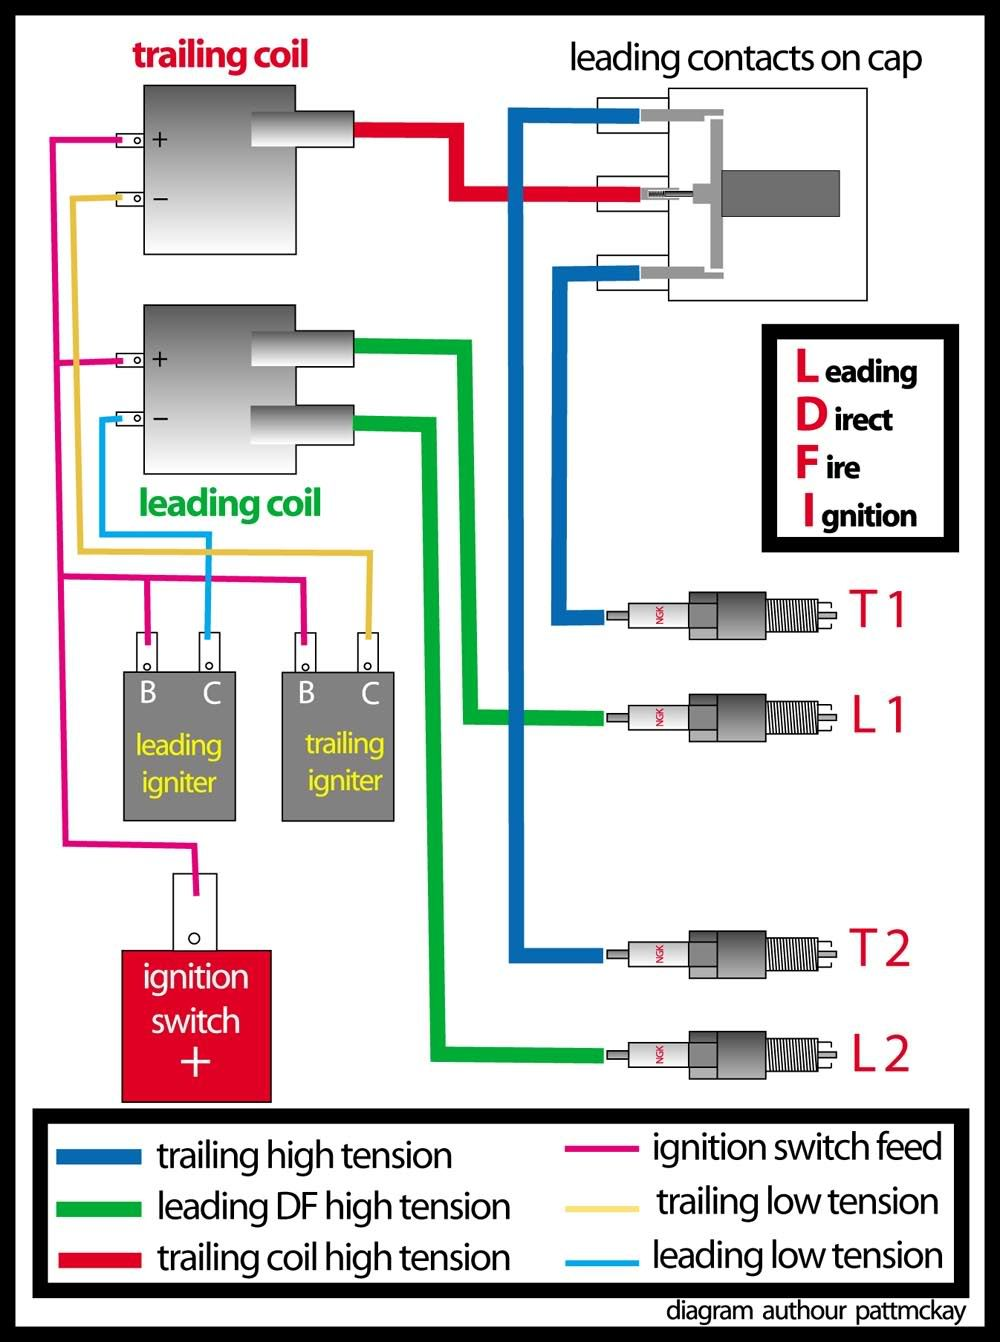 f51a9f8accfbb2accd16cb3edbec5003 here is a simple wiring diagram for a single leading direct fire n-tune wiring diagram at gsmx.co